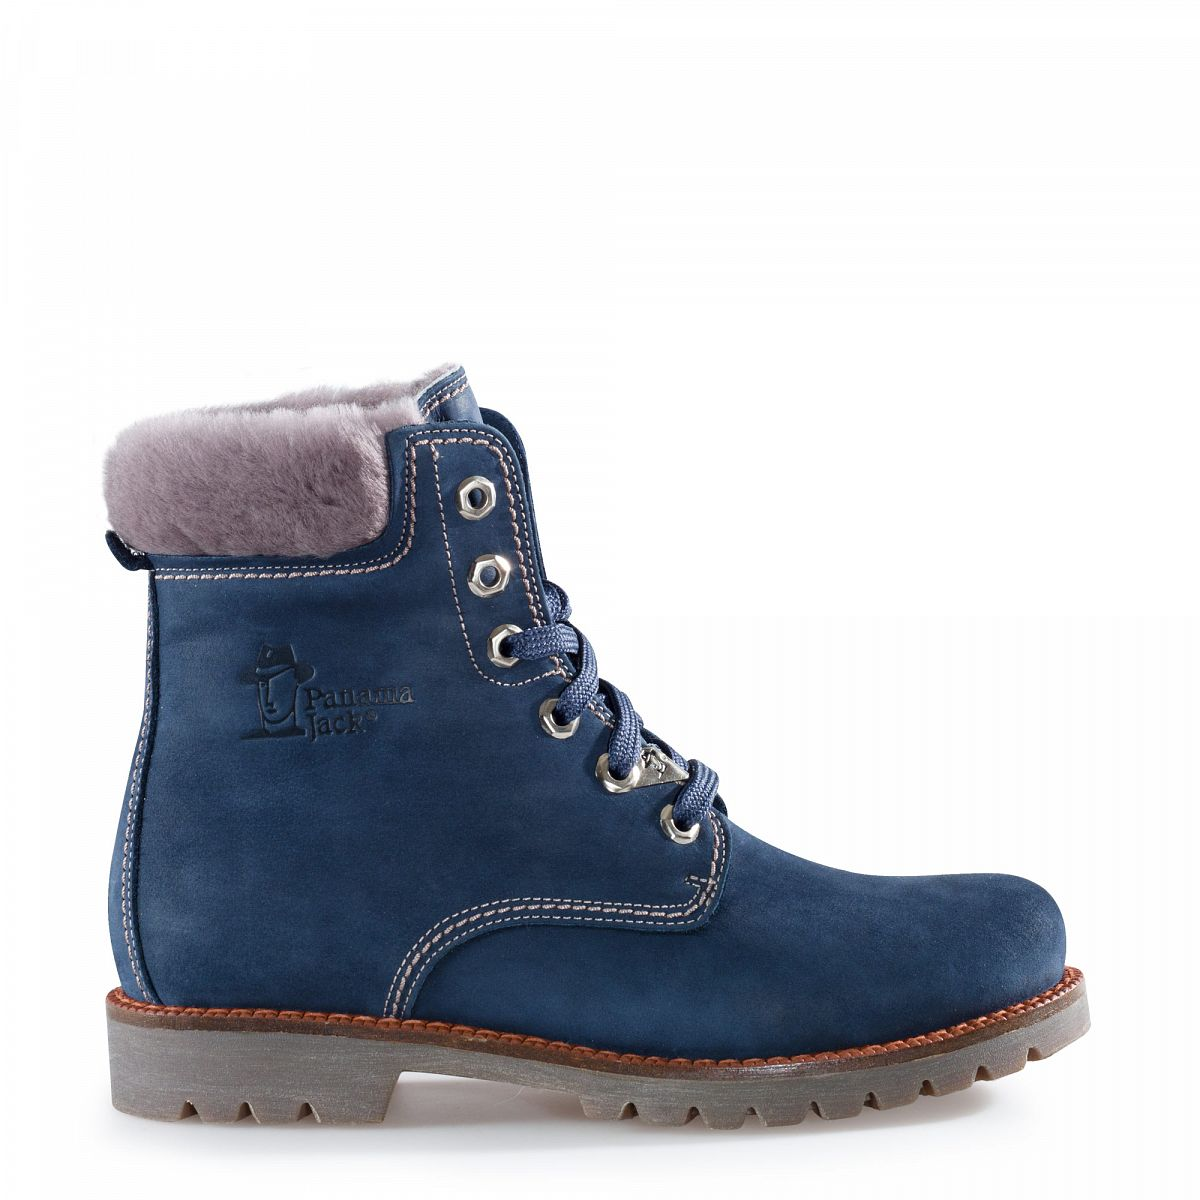 Cool Panama Jack Official Shop Of Boots Shoes And Accessories